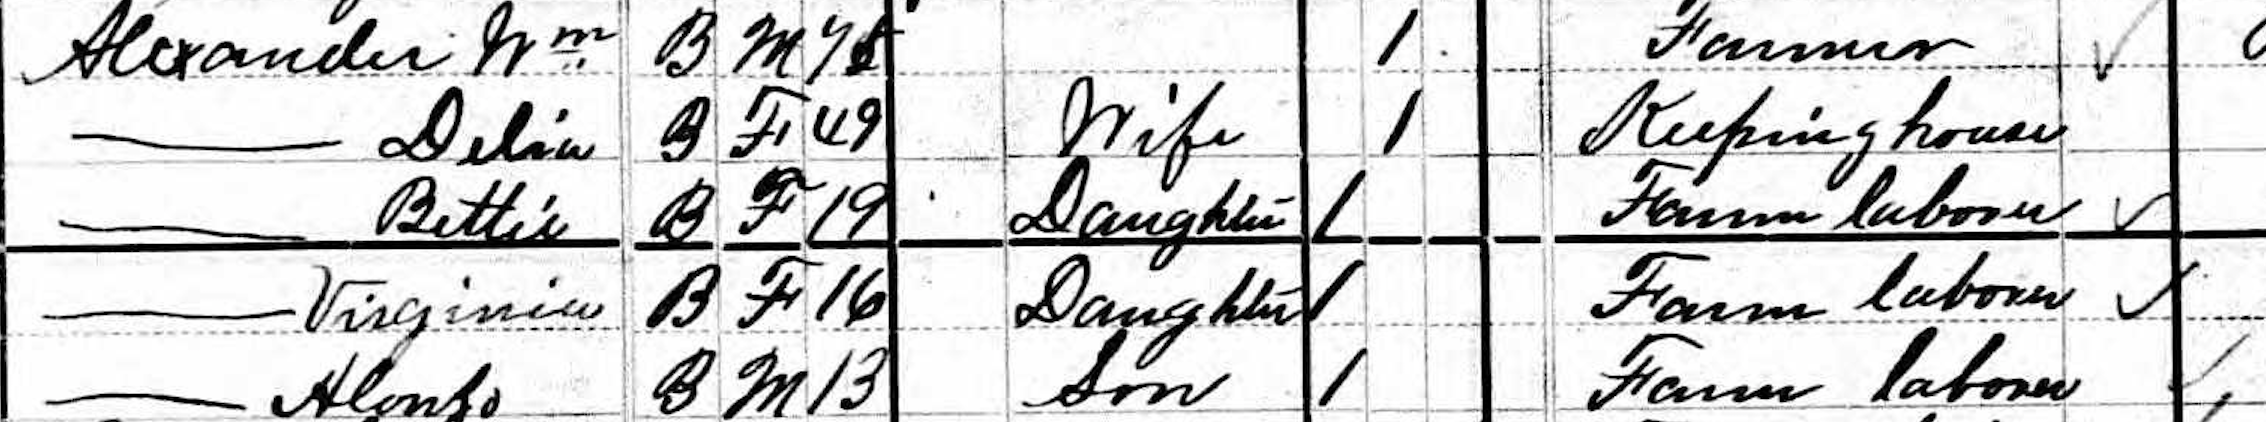 1880 Census, Noxubee County, MS